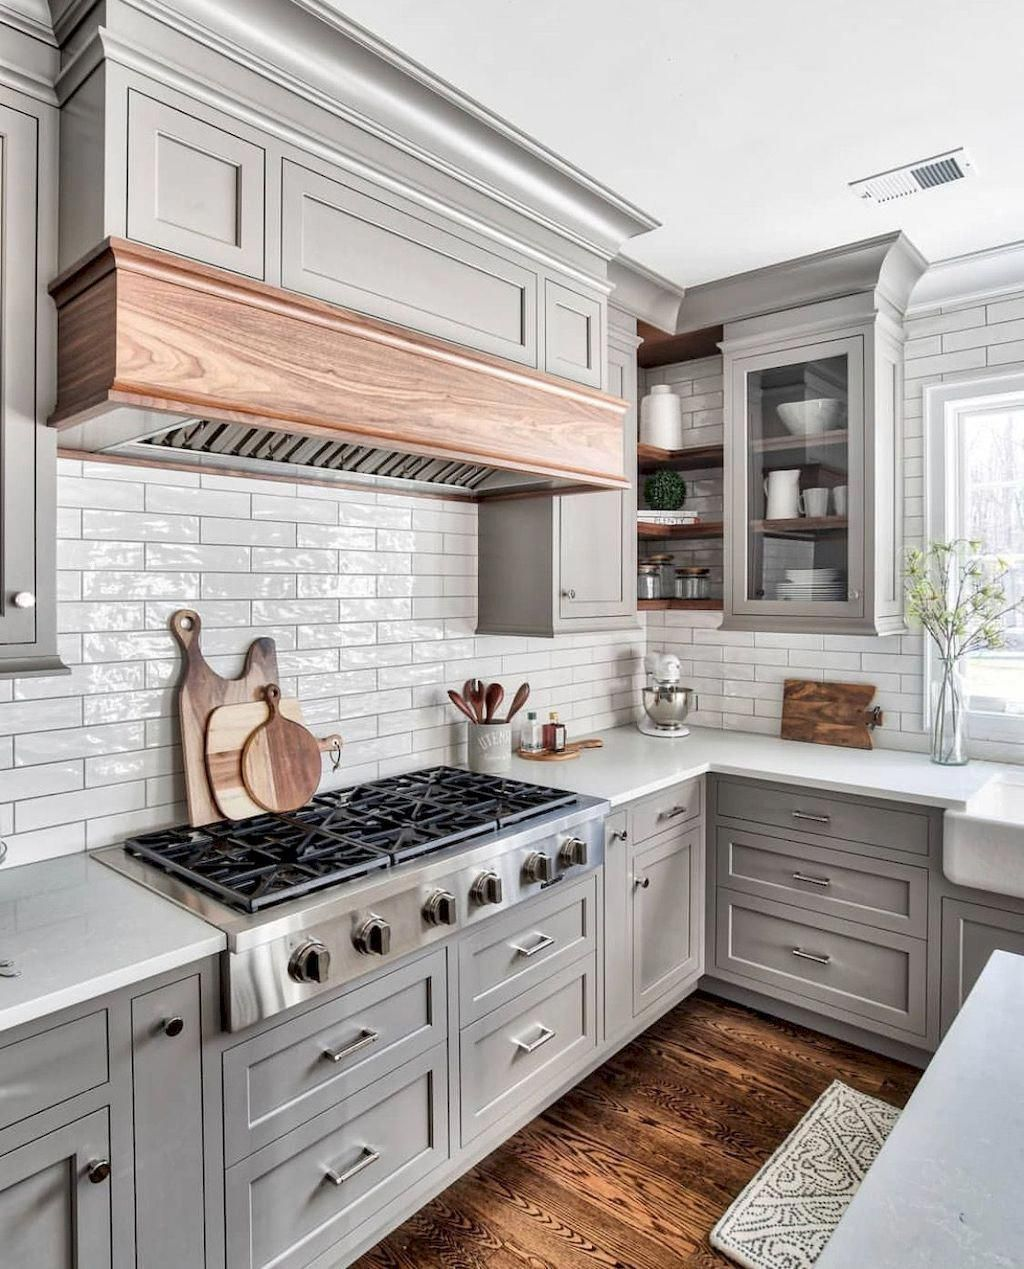 Any Style Goes In Kitchen Design Inspiration Is Limitless Kitchendecor In 2020 Wooden Kitchen Cabinets Grey Kitchen Designs Kitchen Renovation